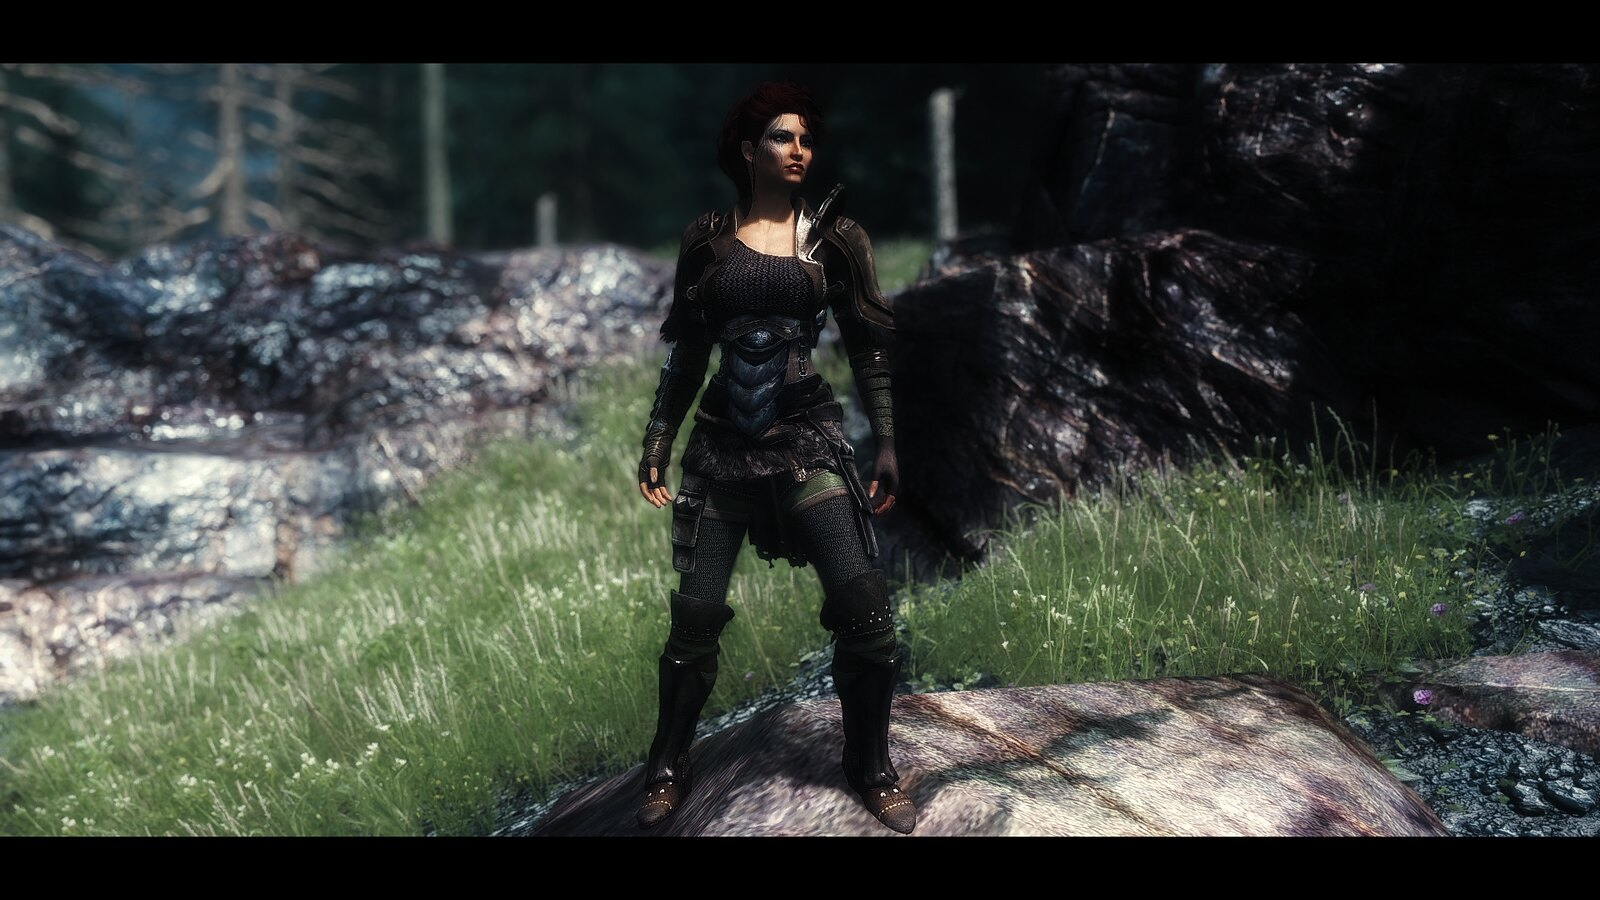 Skyrim - Armor & Clothing Mods | Flickr